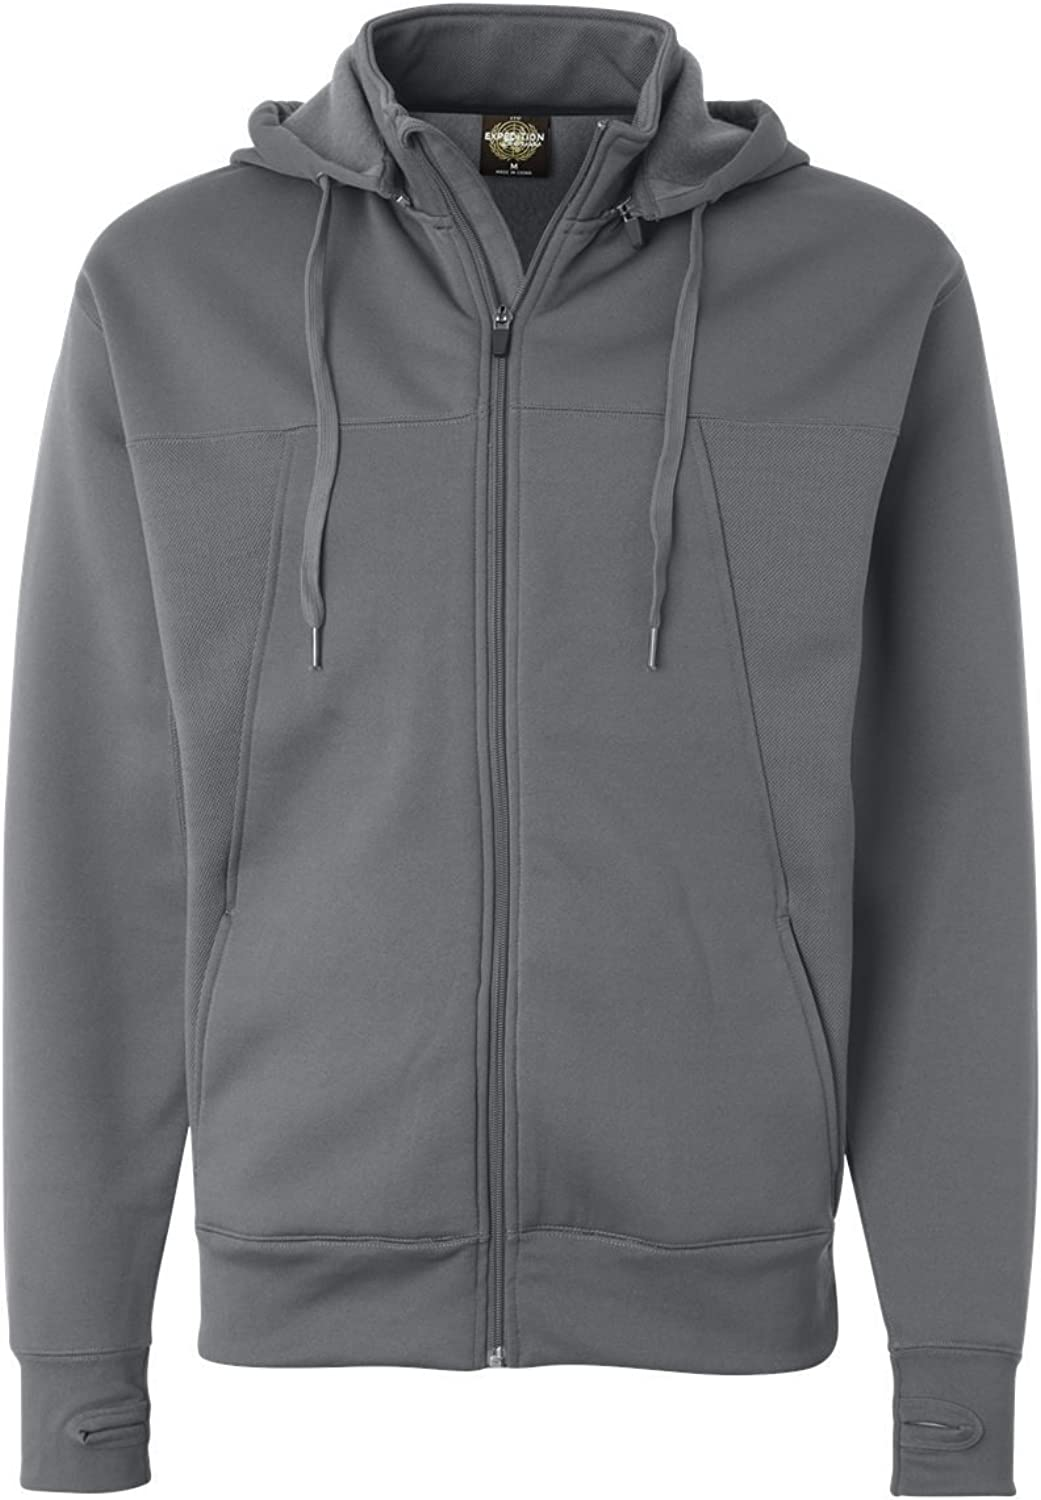 Independent Trading Co. Mens HiTech FullZip Hooded Sweatshirt  Charcoal  M